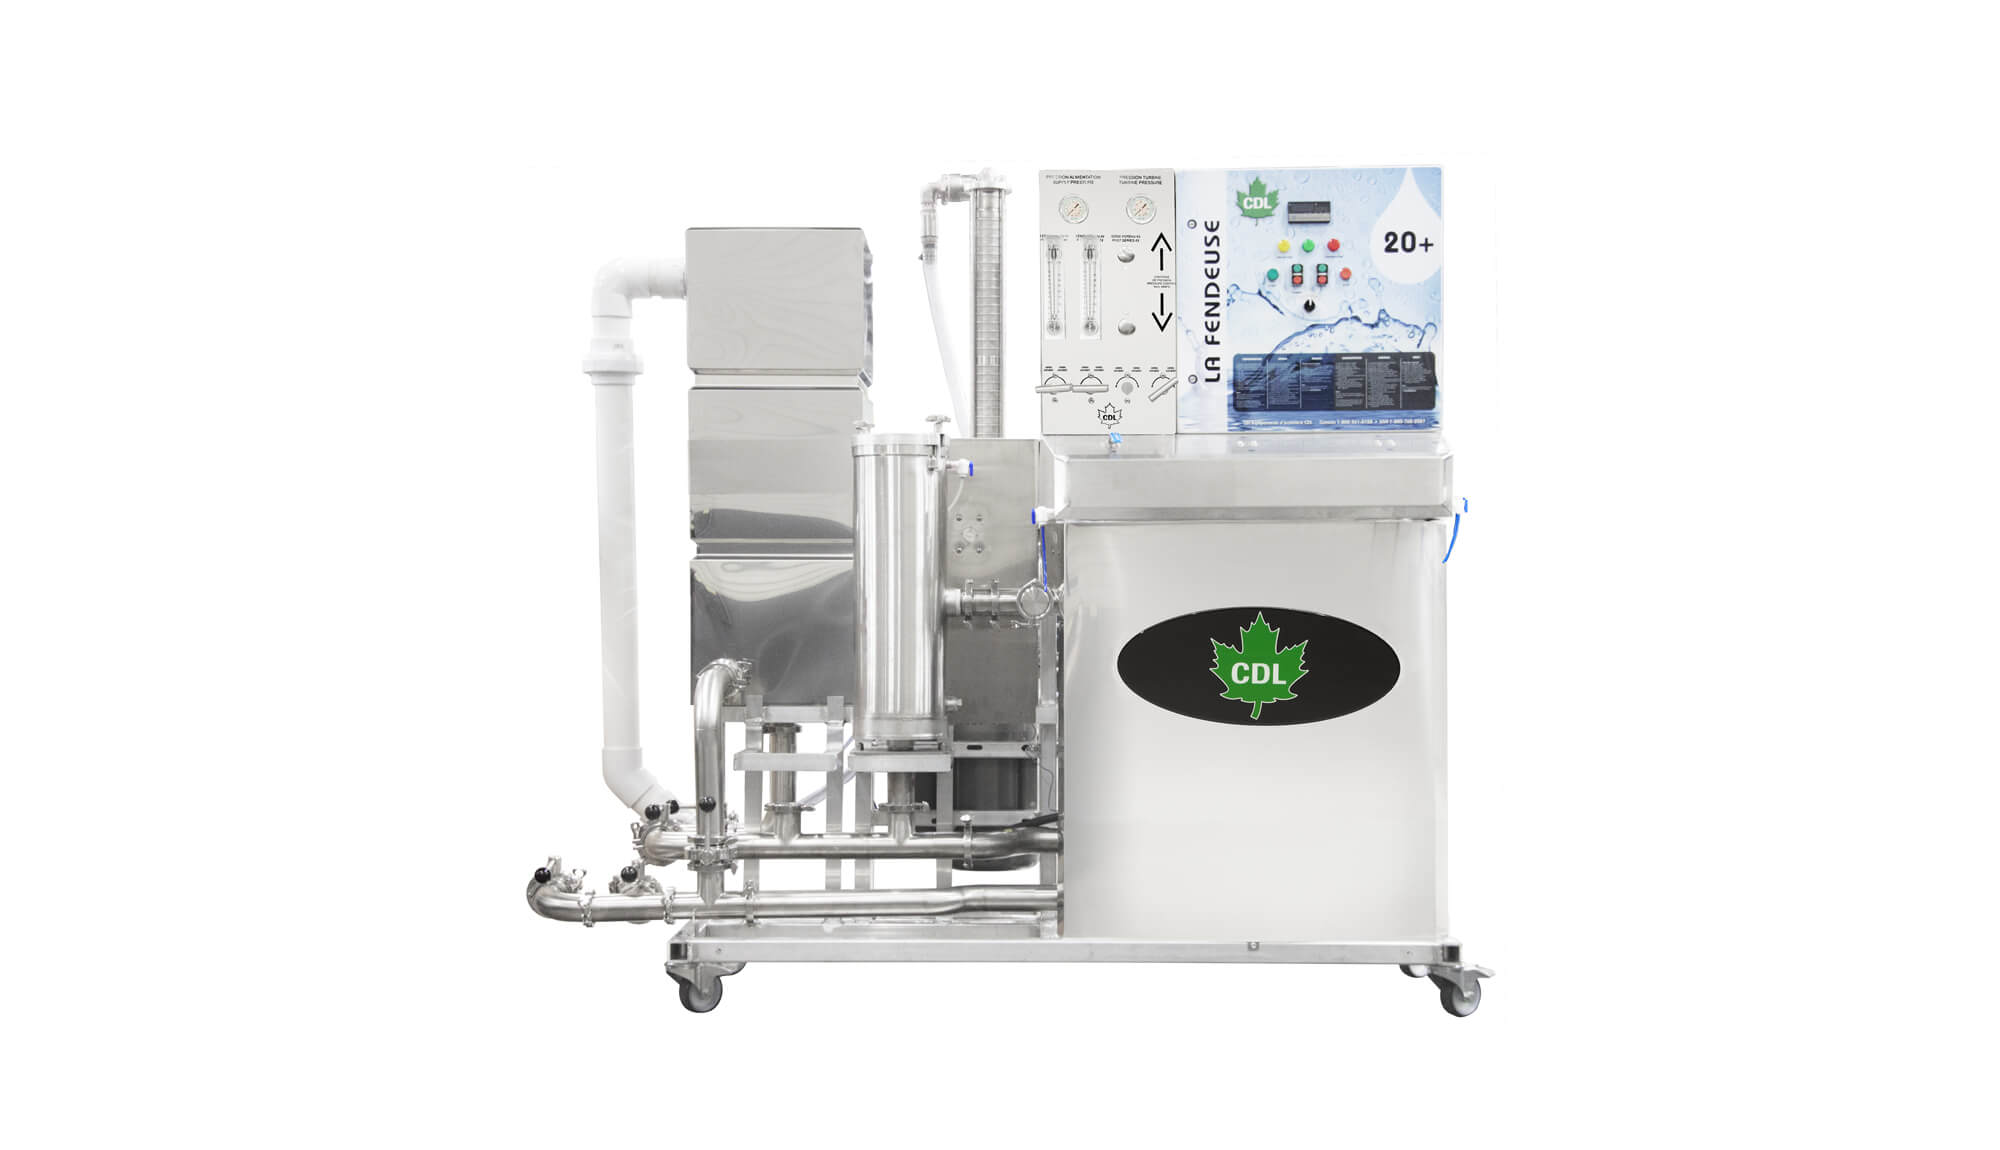 Concentrateur 20+ CDL 20+ Reverse osmosis 7 600 GPH